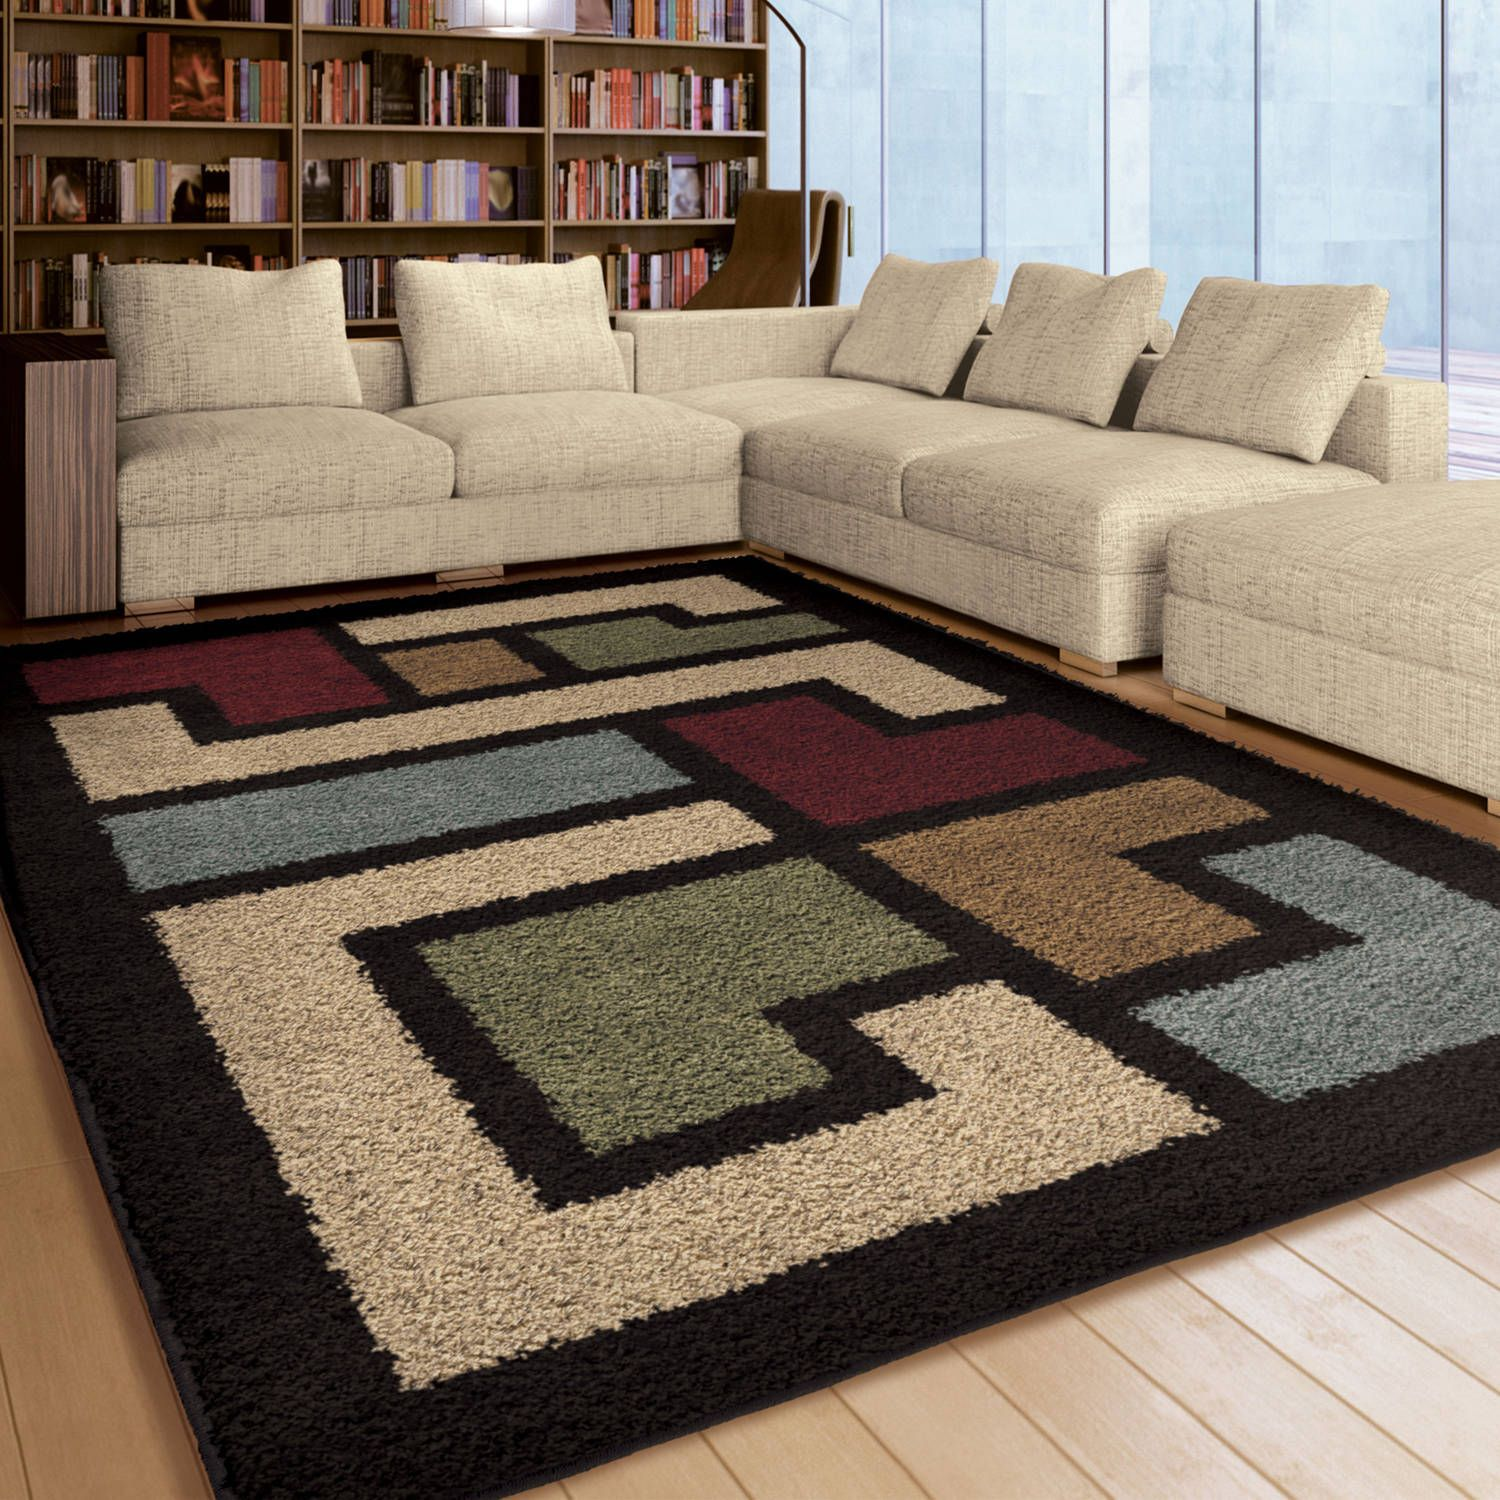 Orian Rugs Soft Shag Mapped Floor Multi Colored Area Rug Walmart